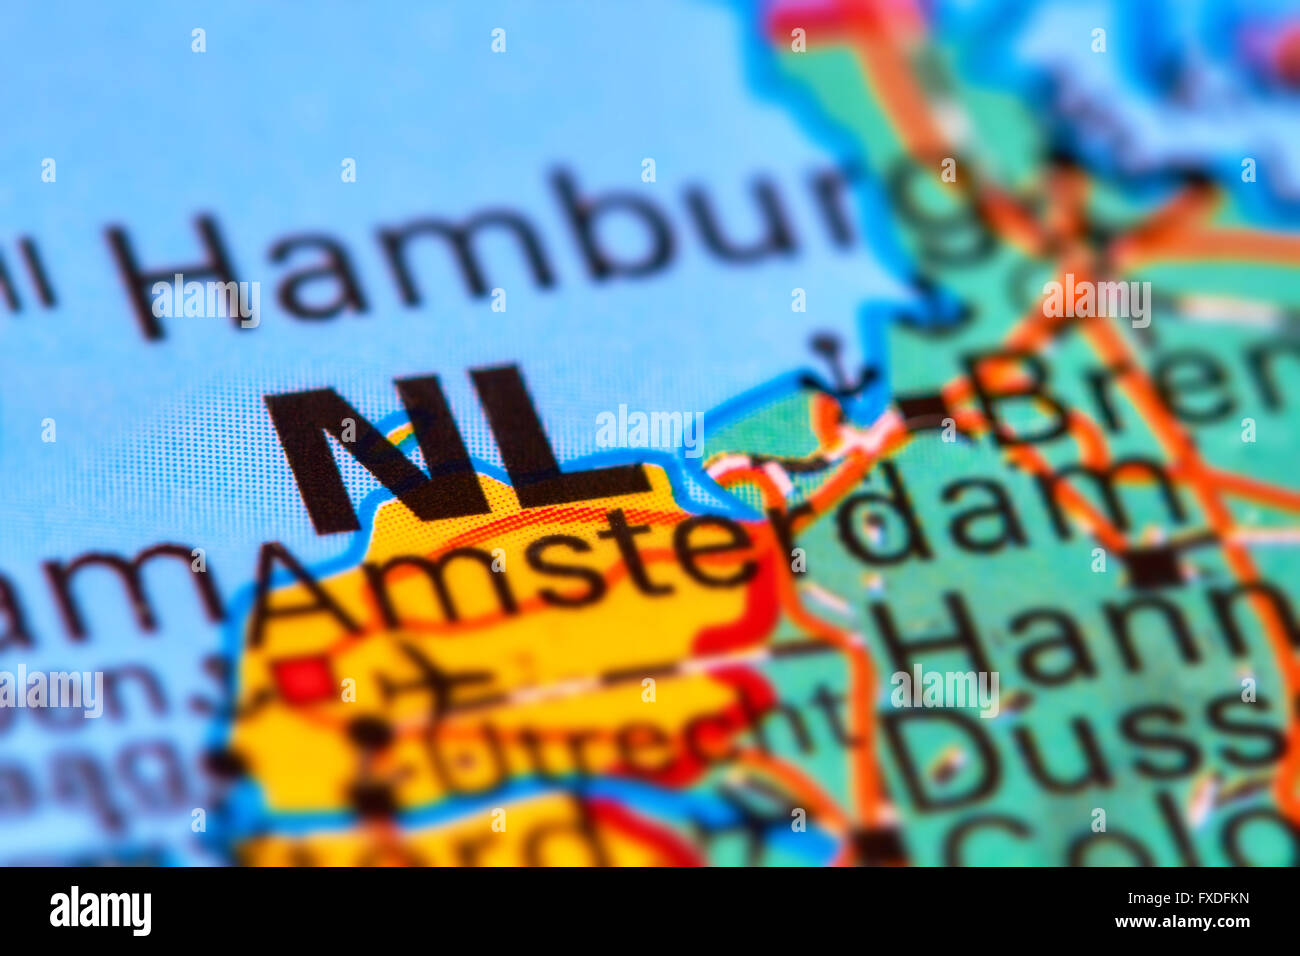 Holland country map stock photos holland country map stock images netherlands country in europe on the world map stock image gumiabroncs Gallery